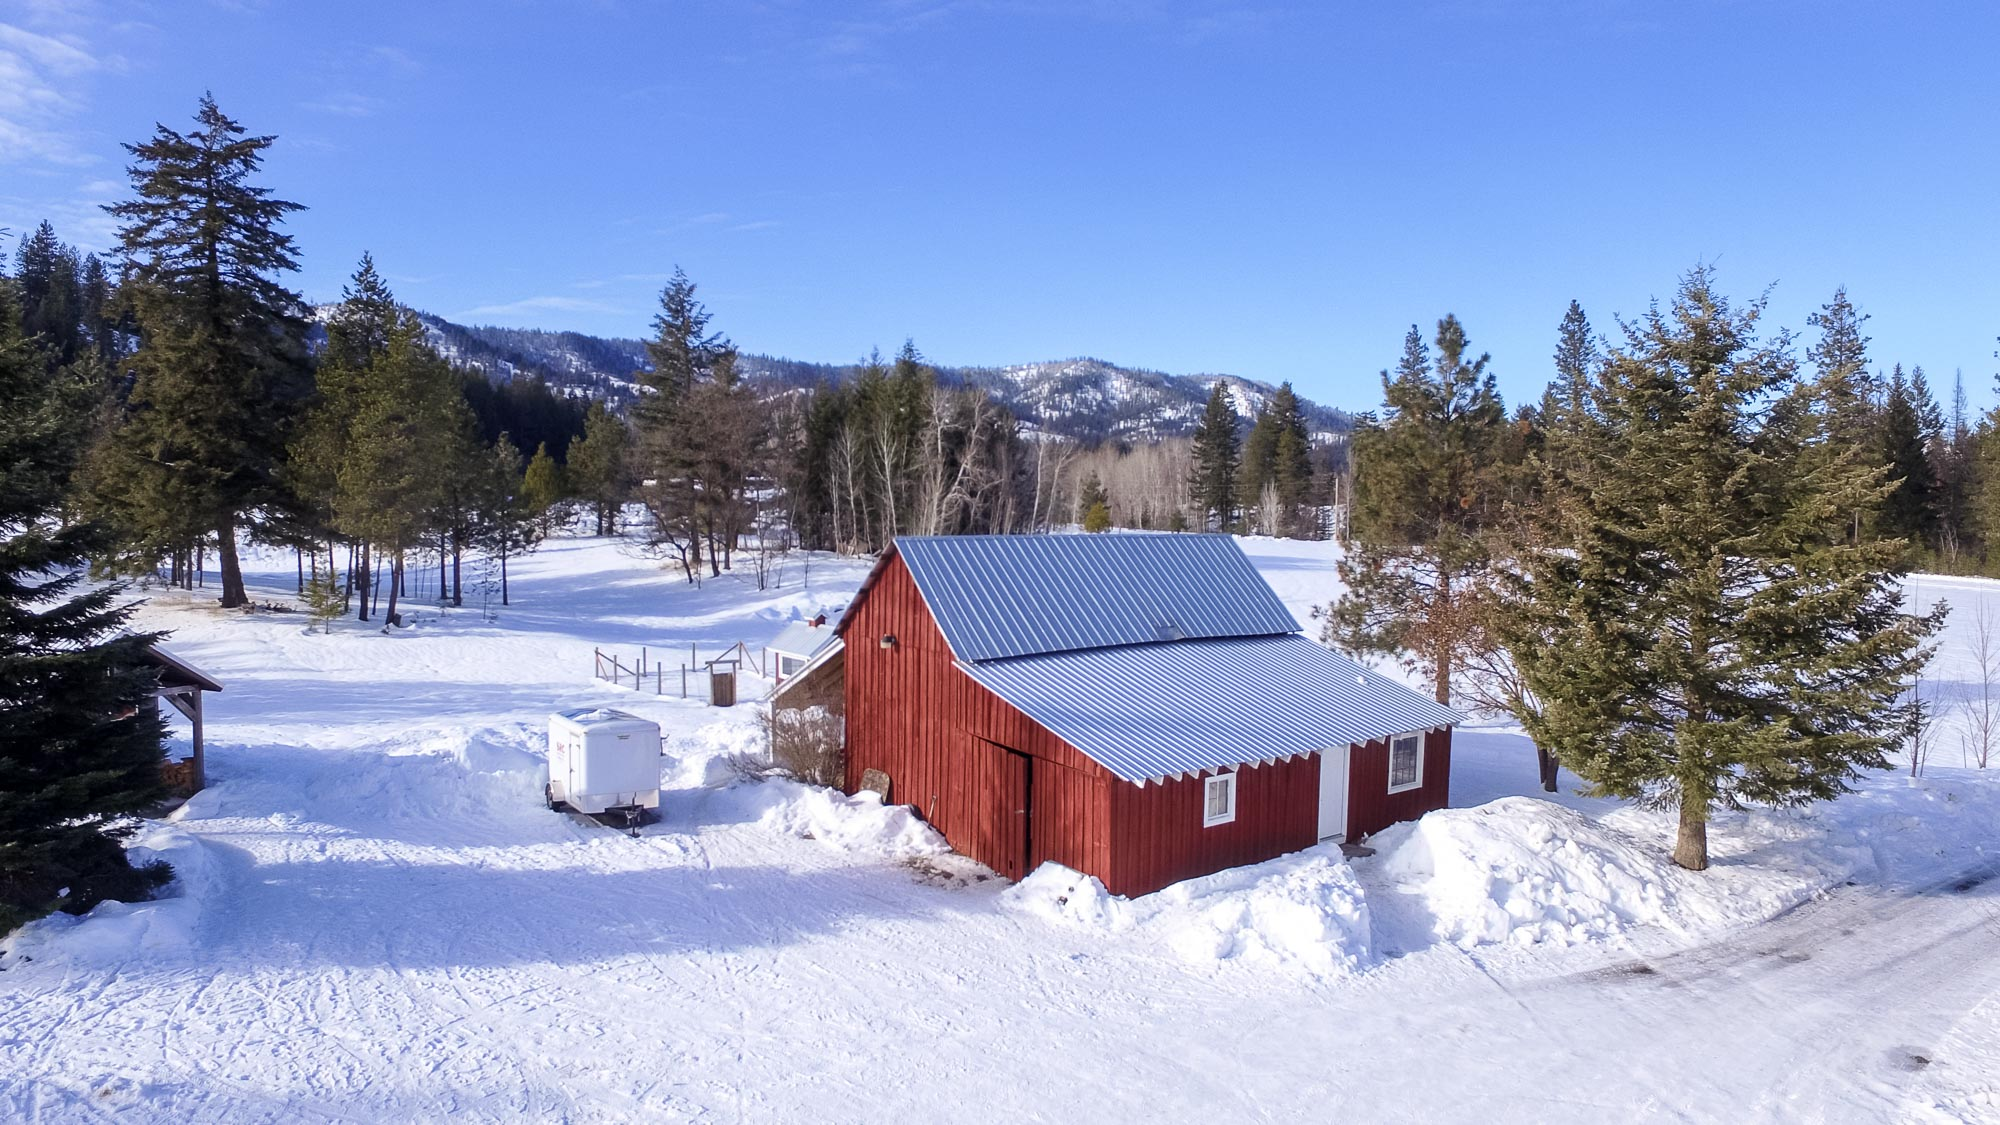 North Spokane Drone Photography Deer Park Red Barn